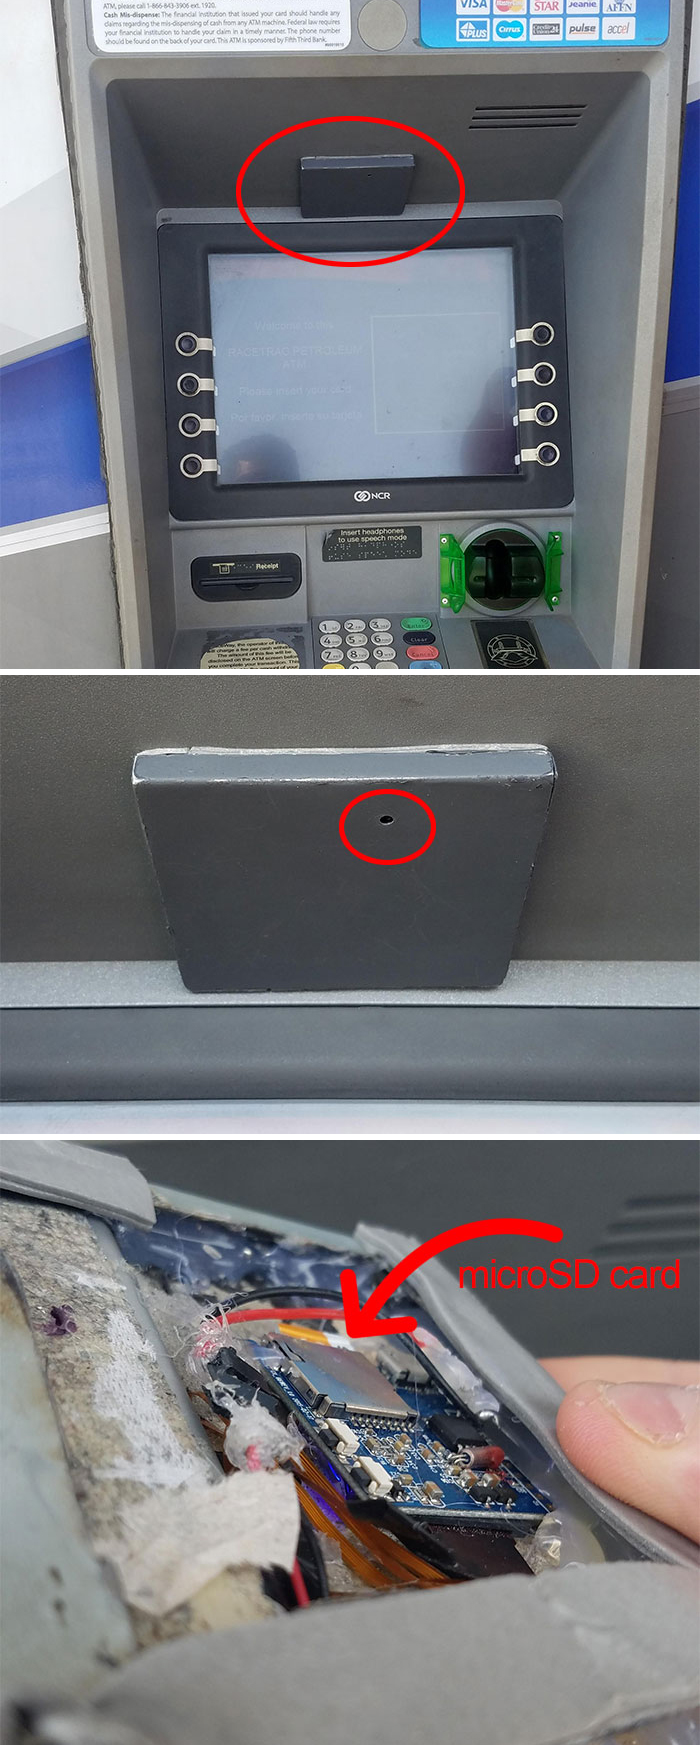 Went To An ATM I Frequently Use In Houston And Notice Something Different... What Is This Grey Box?